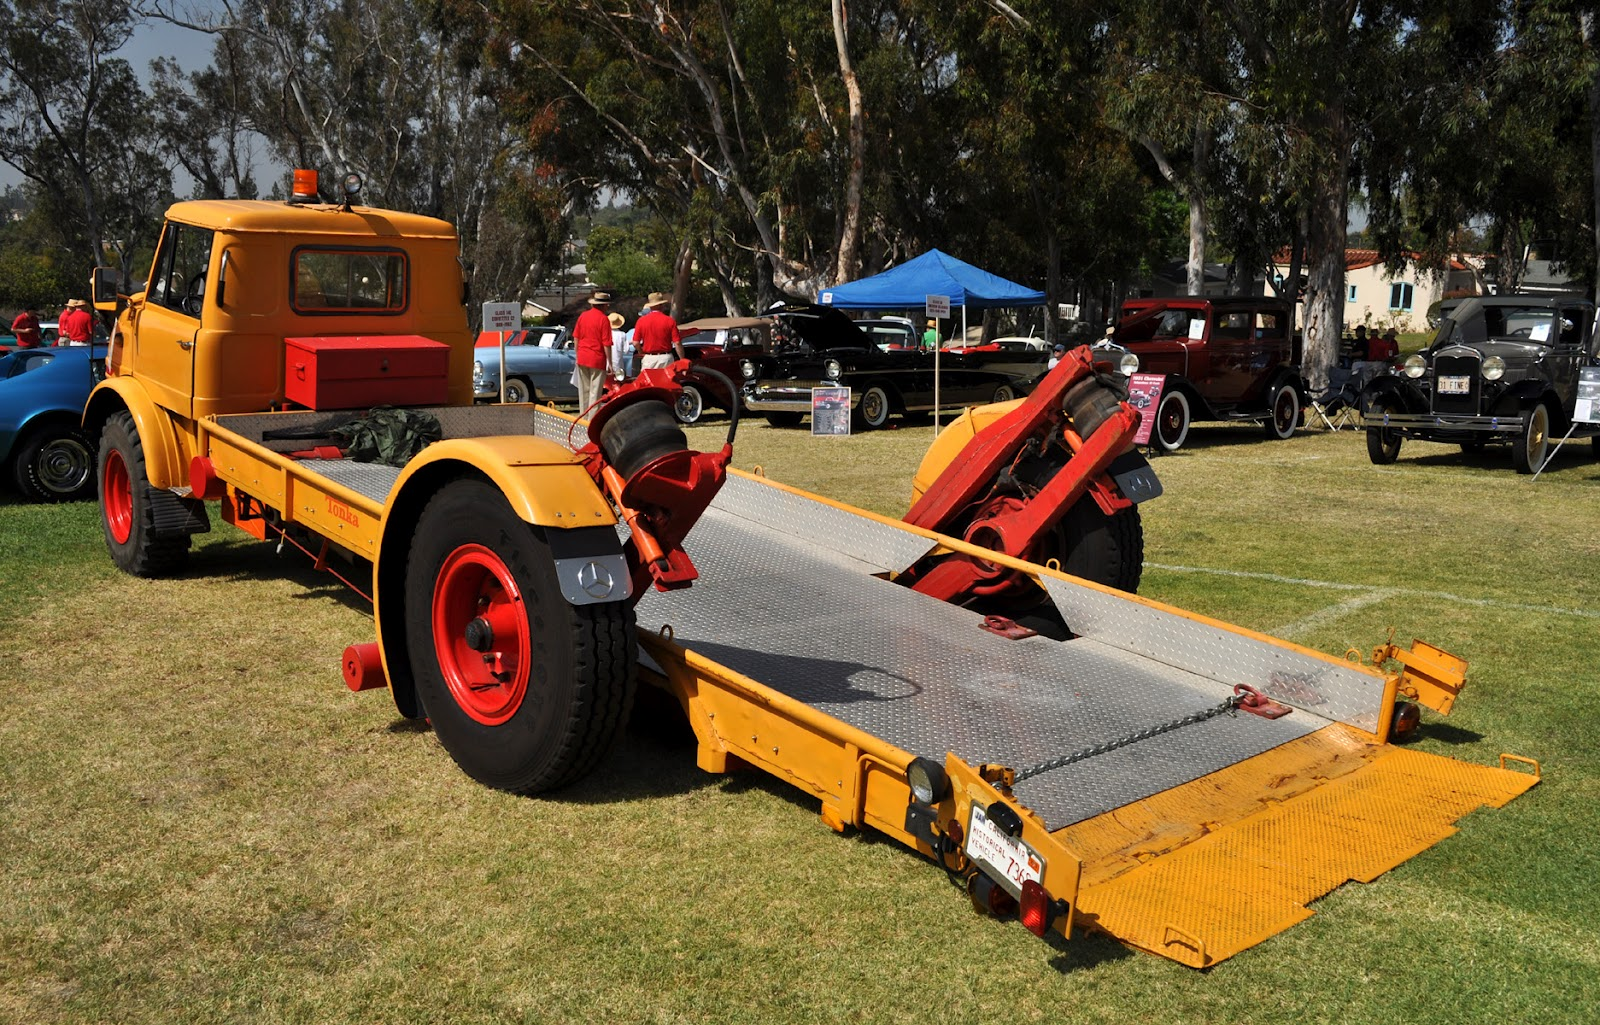 1966 unimog flatbed tow truck with an innovative tilt rear wheel assembly that is brilliant